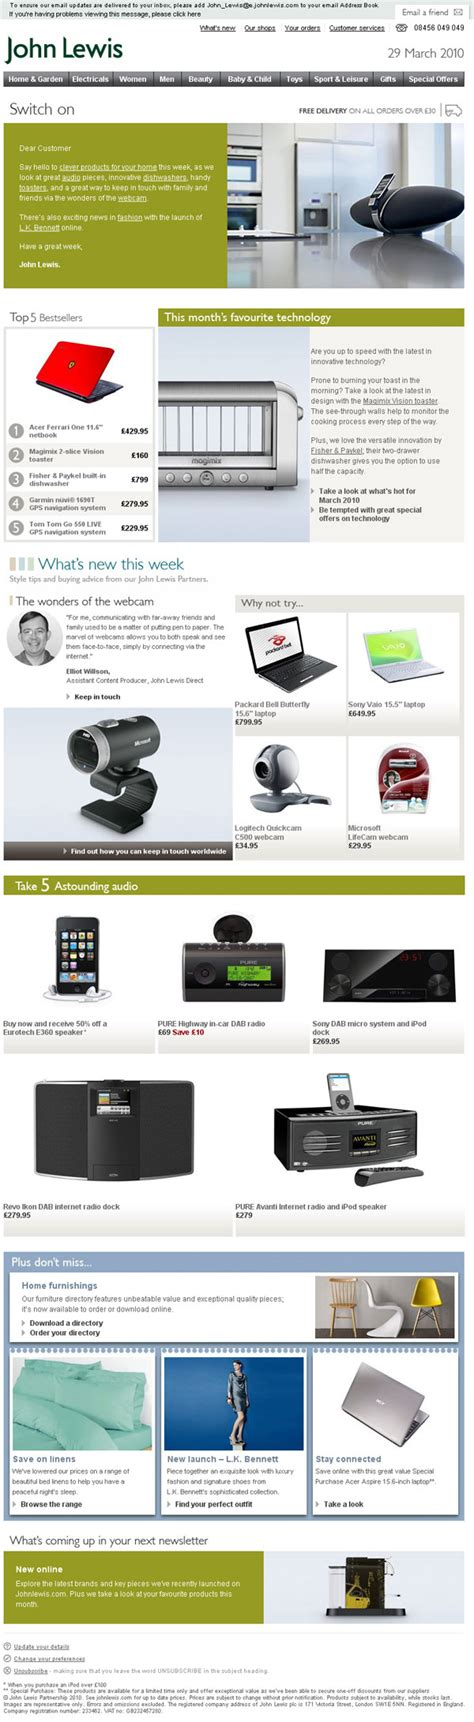 email format john lewis design inspiration 5 emails with beautiful product shots